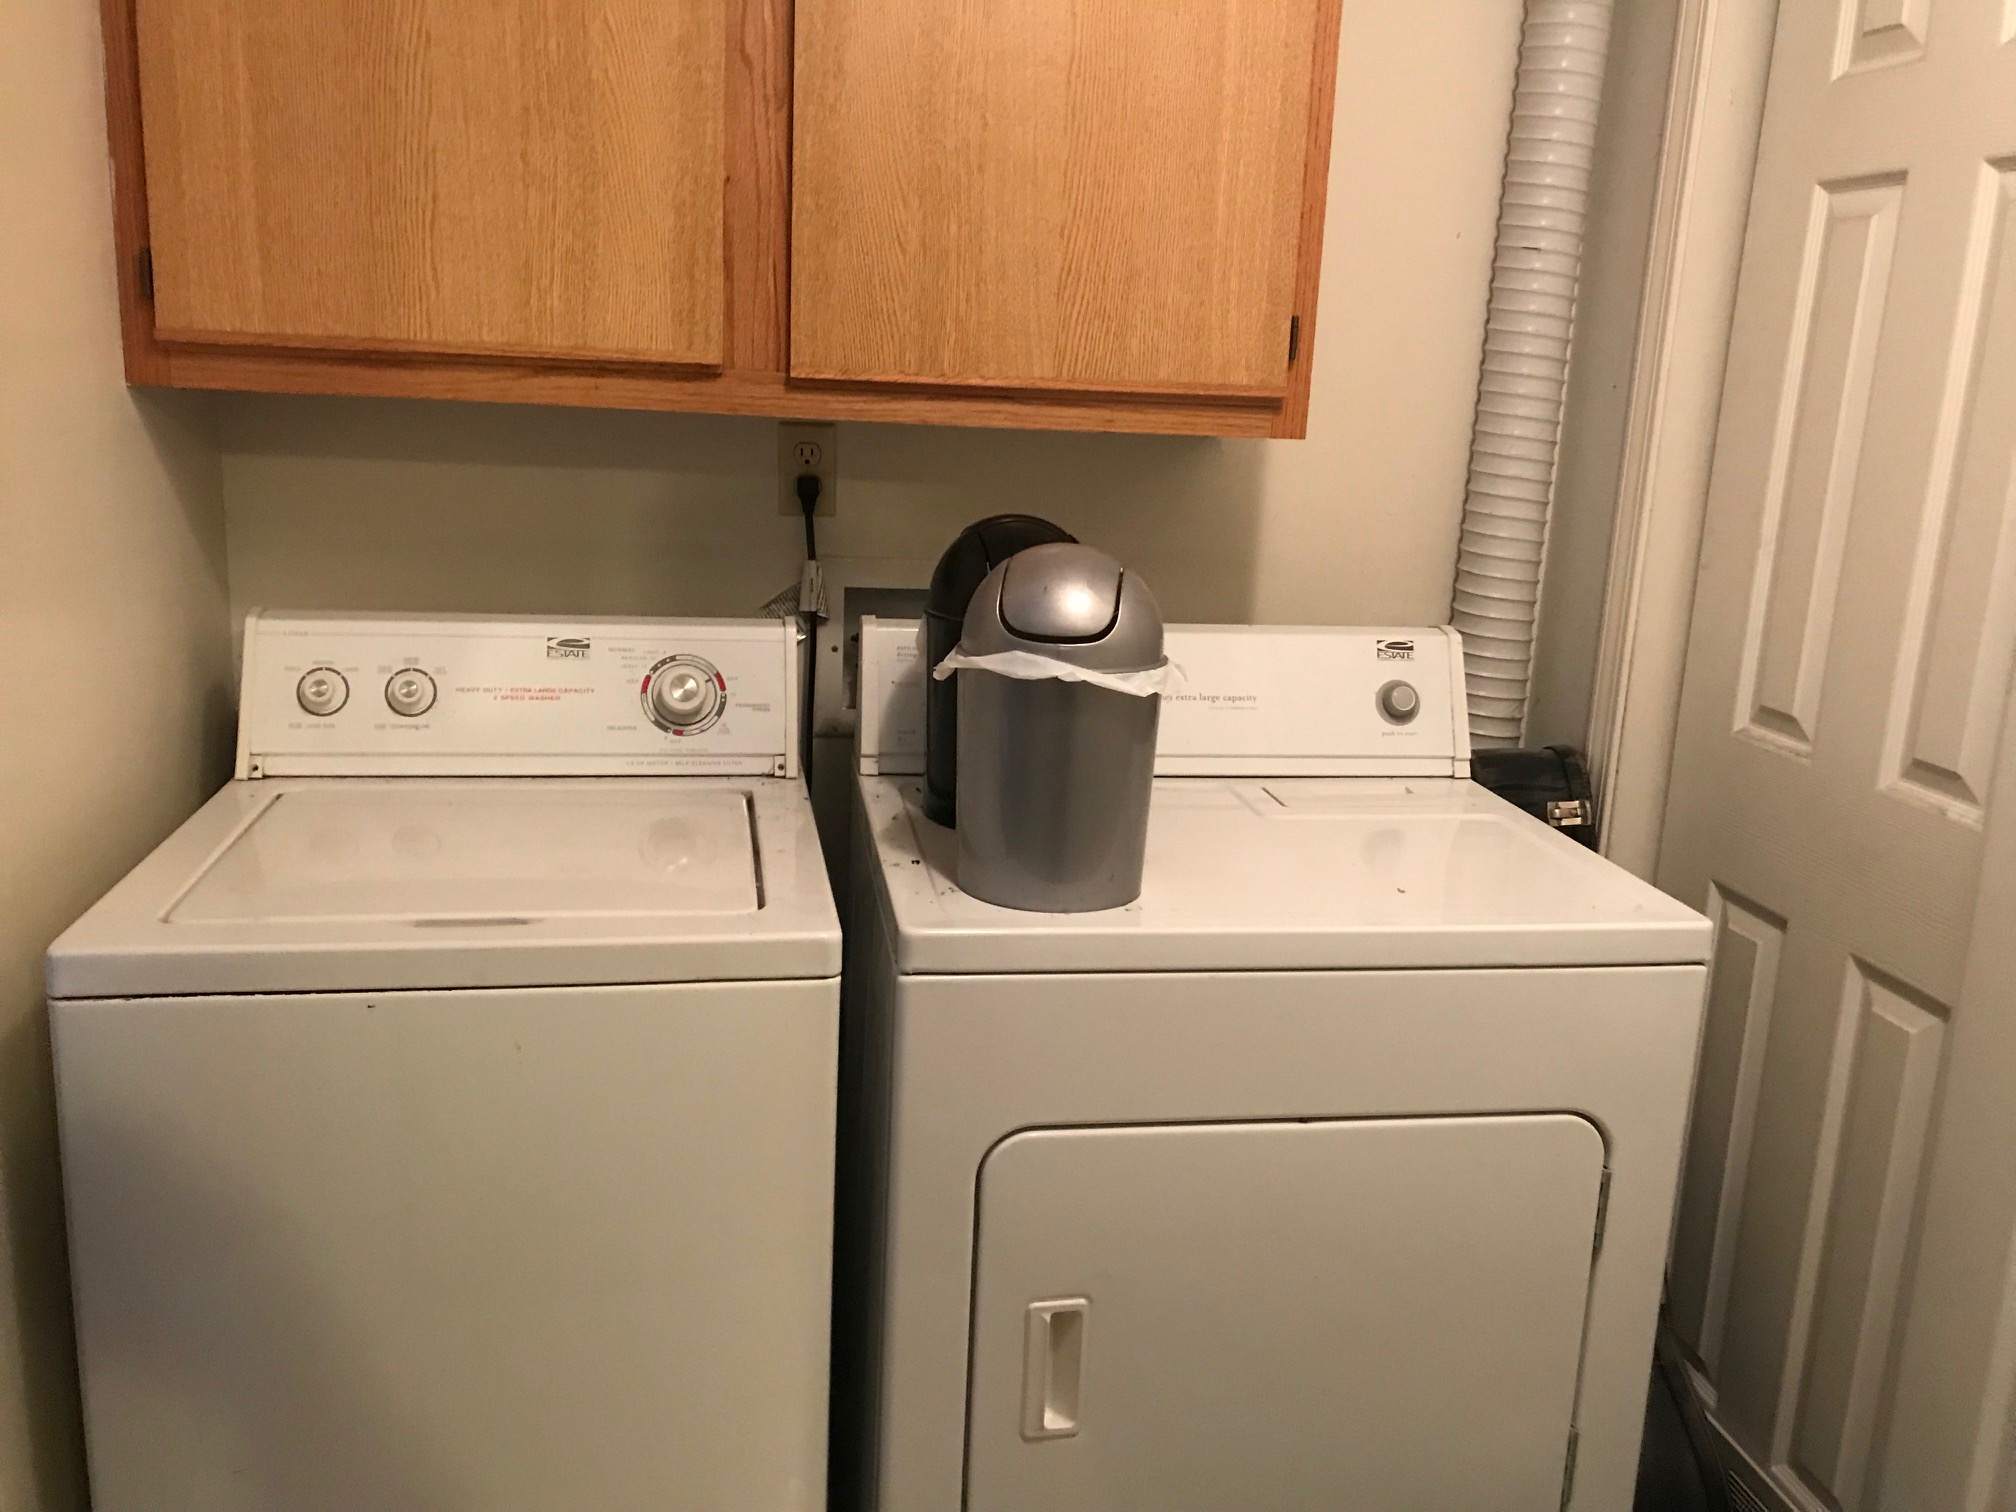 washer dryer.jpg